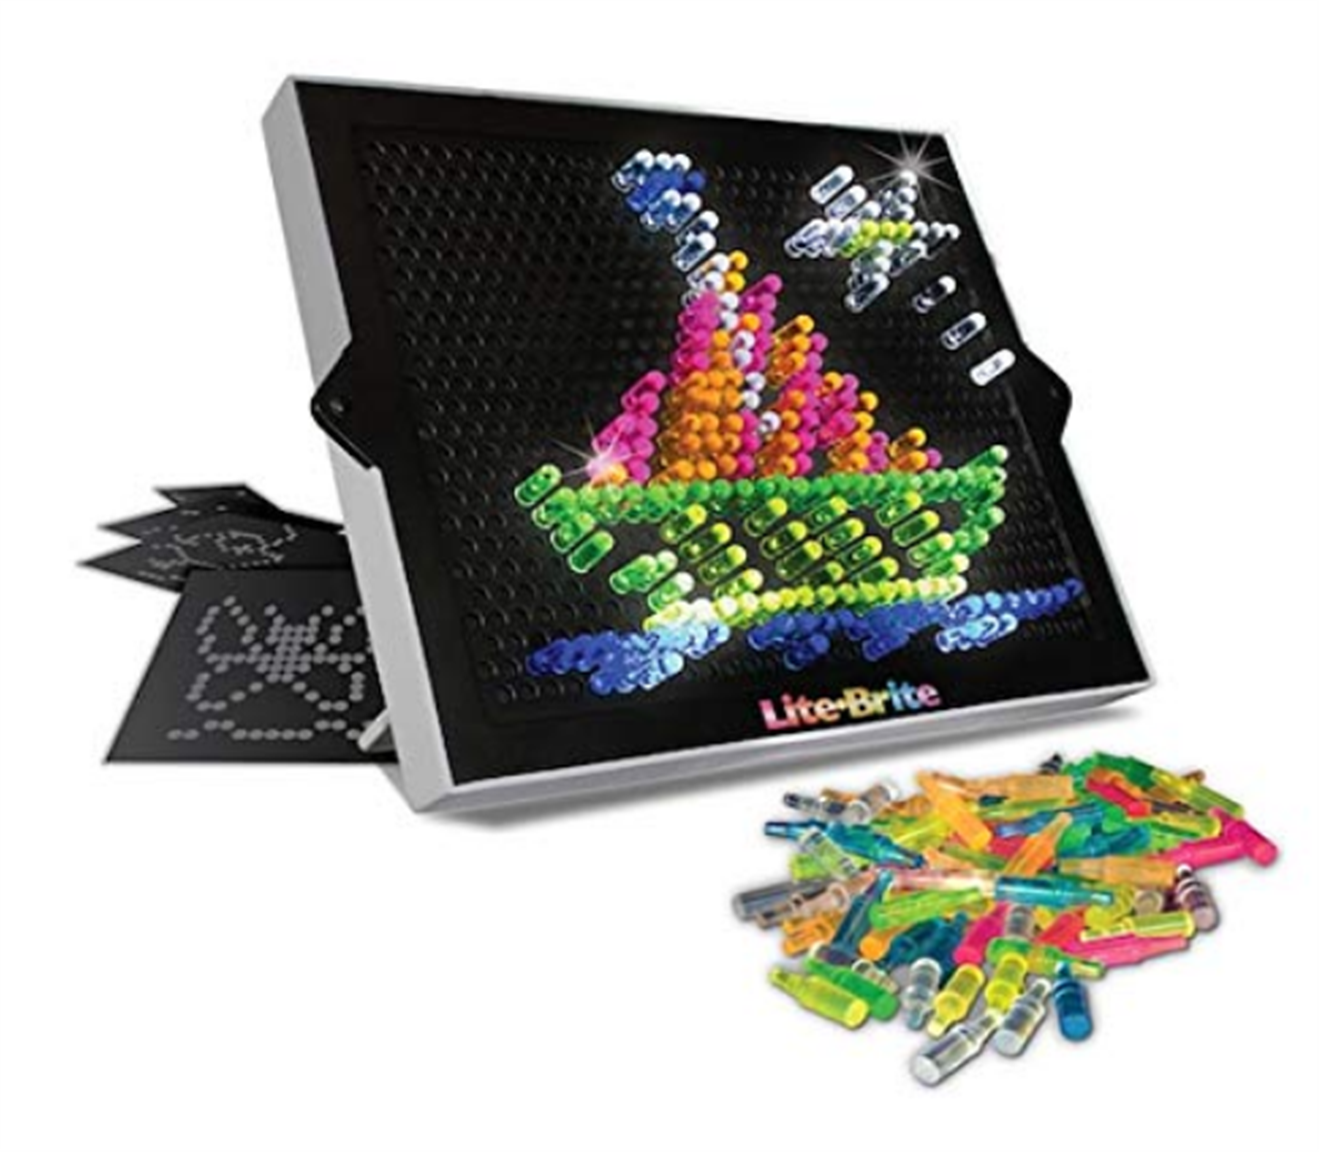 Amazon – Basic Fun Lite-Brite Ultimate Classic Toy Only $14.97, Reg $19.99!